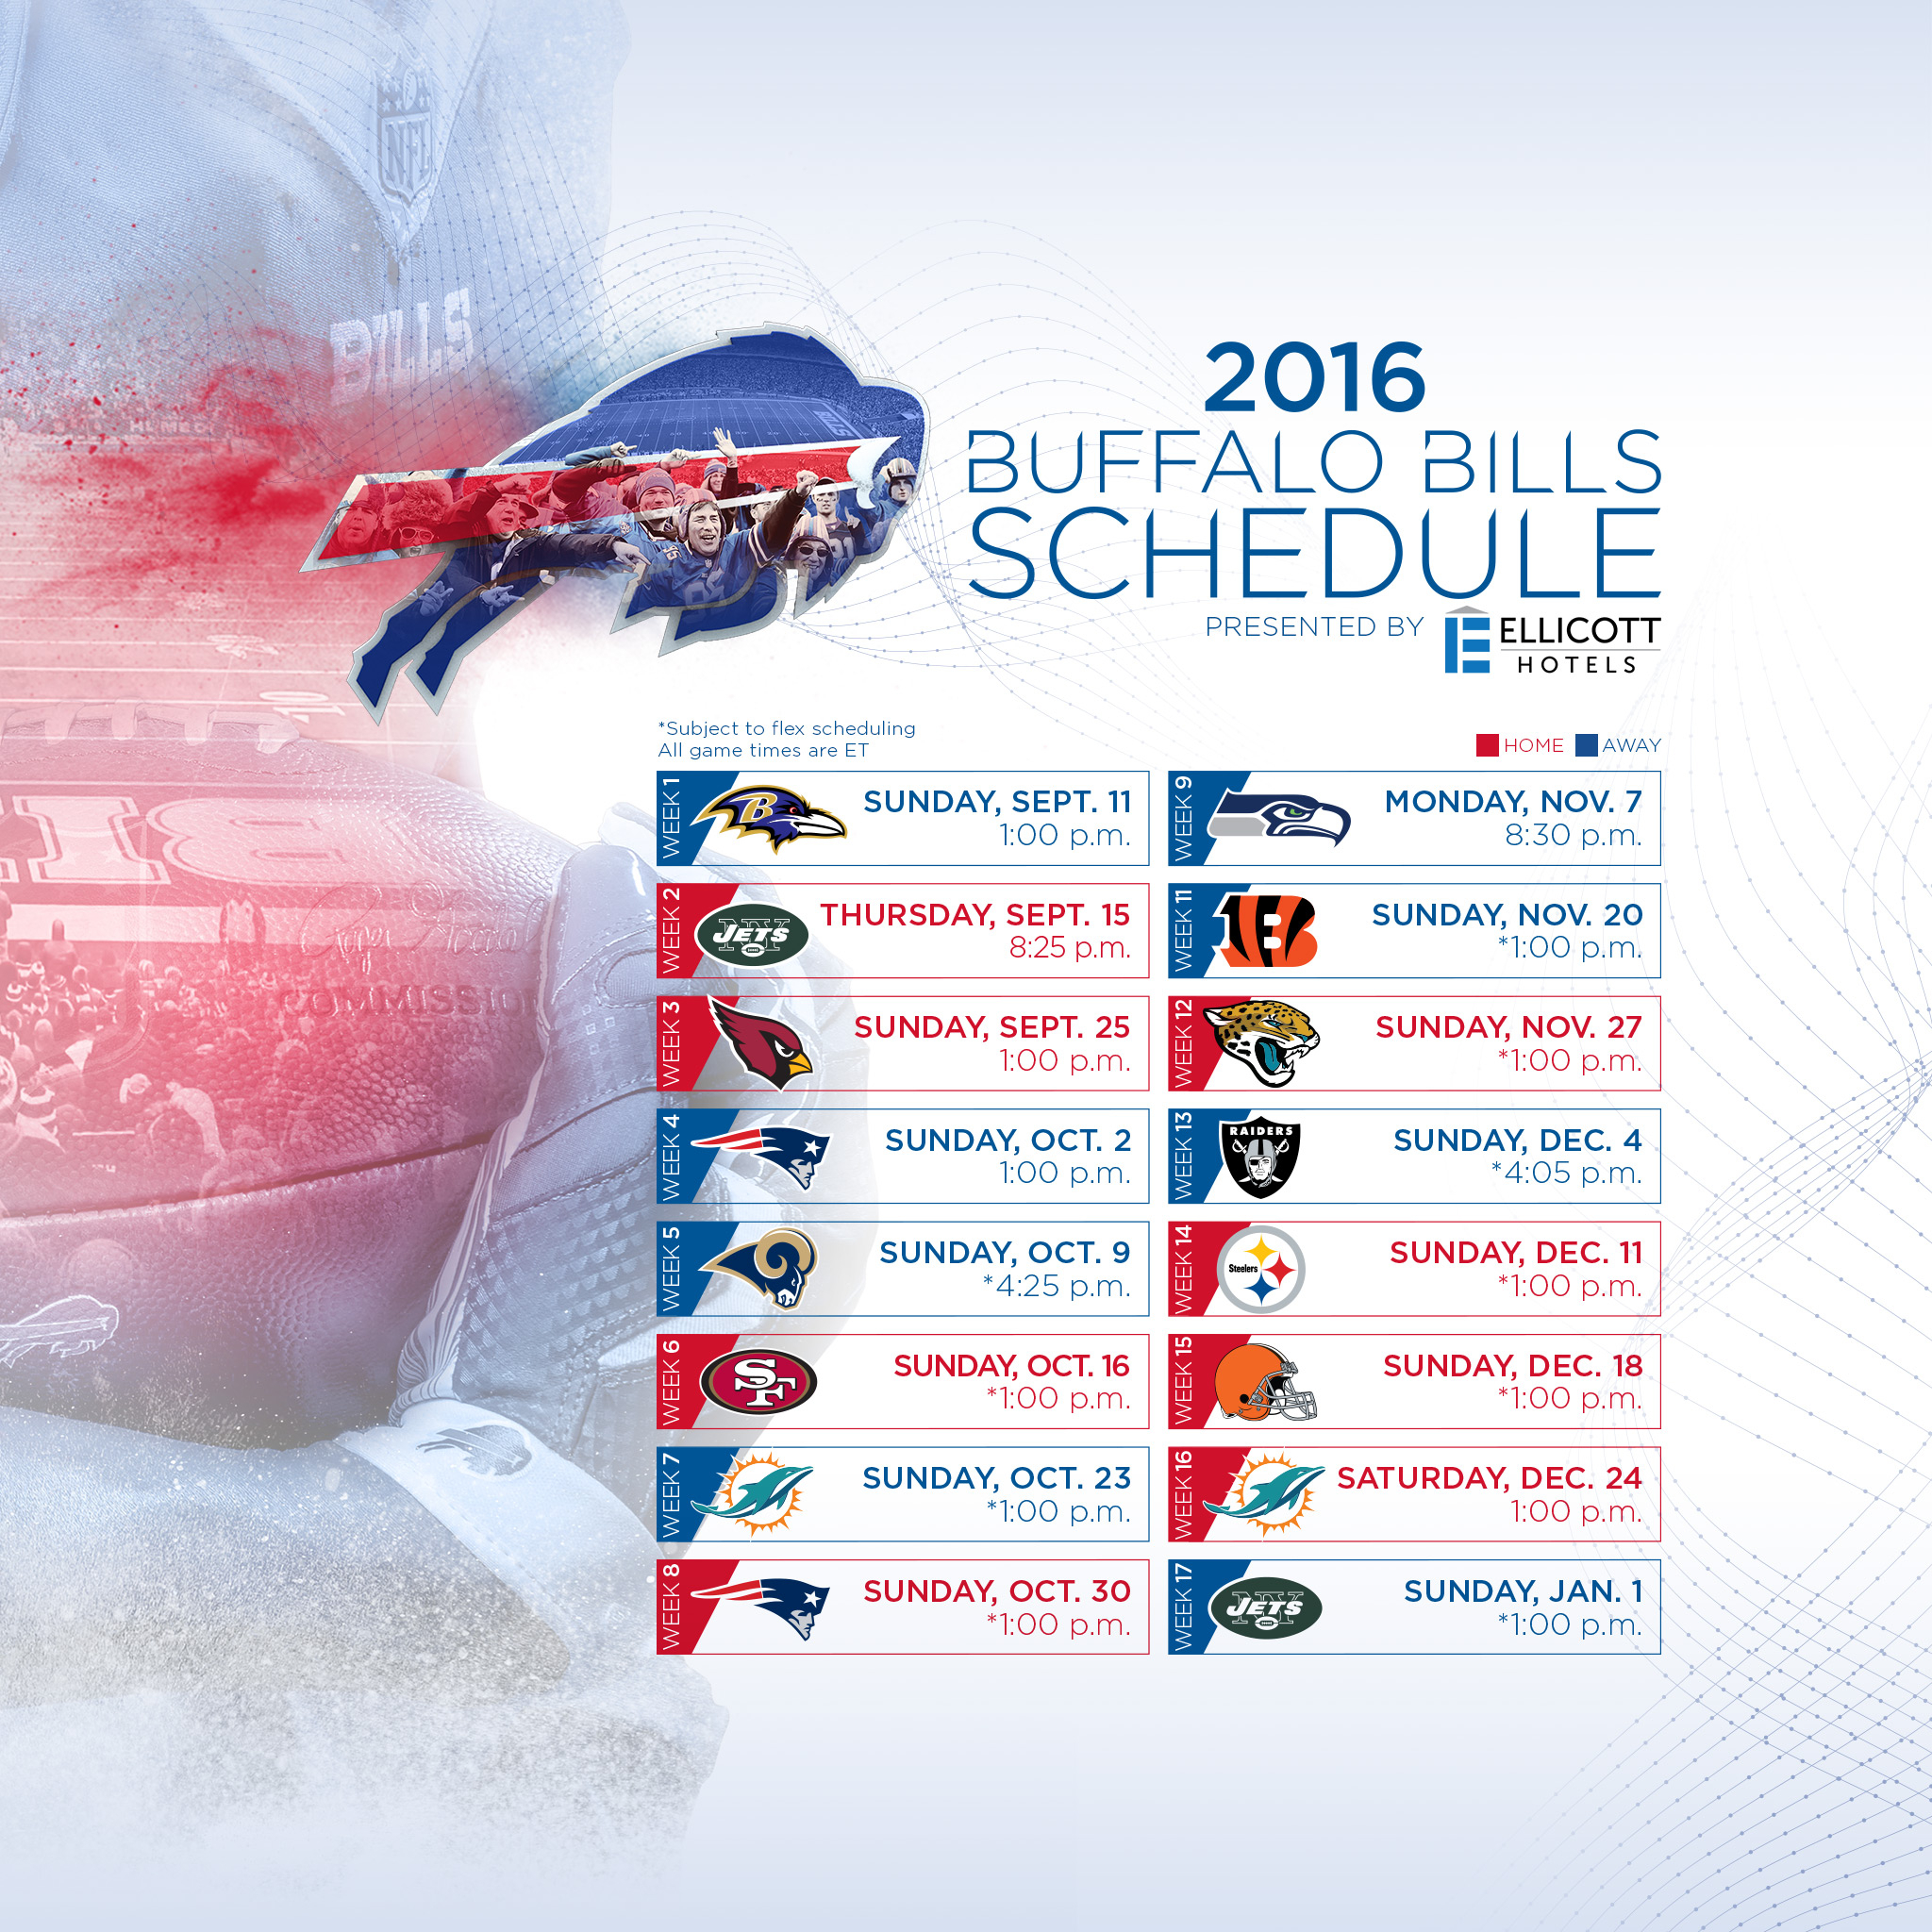 Buffalo Bills Schedule Wallpaper #8Nv9Zoj, 1169.27 Kb